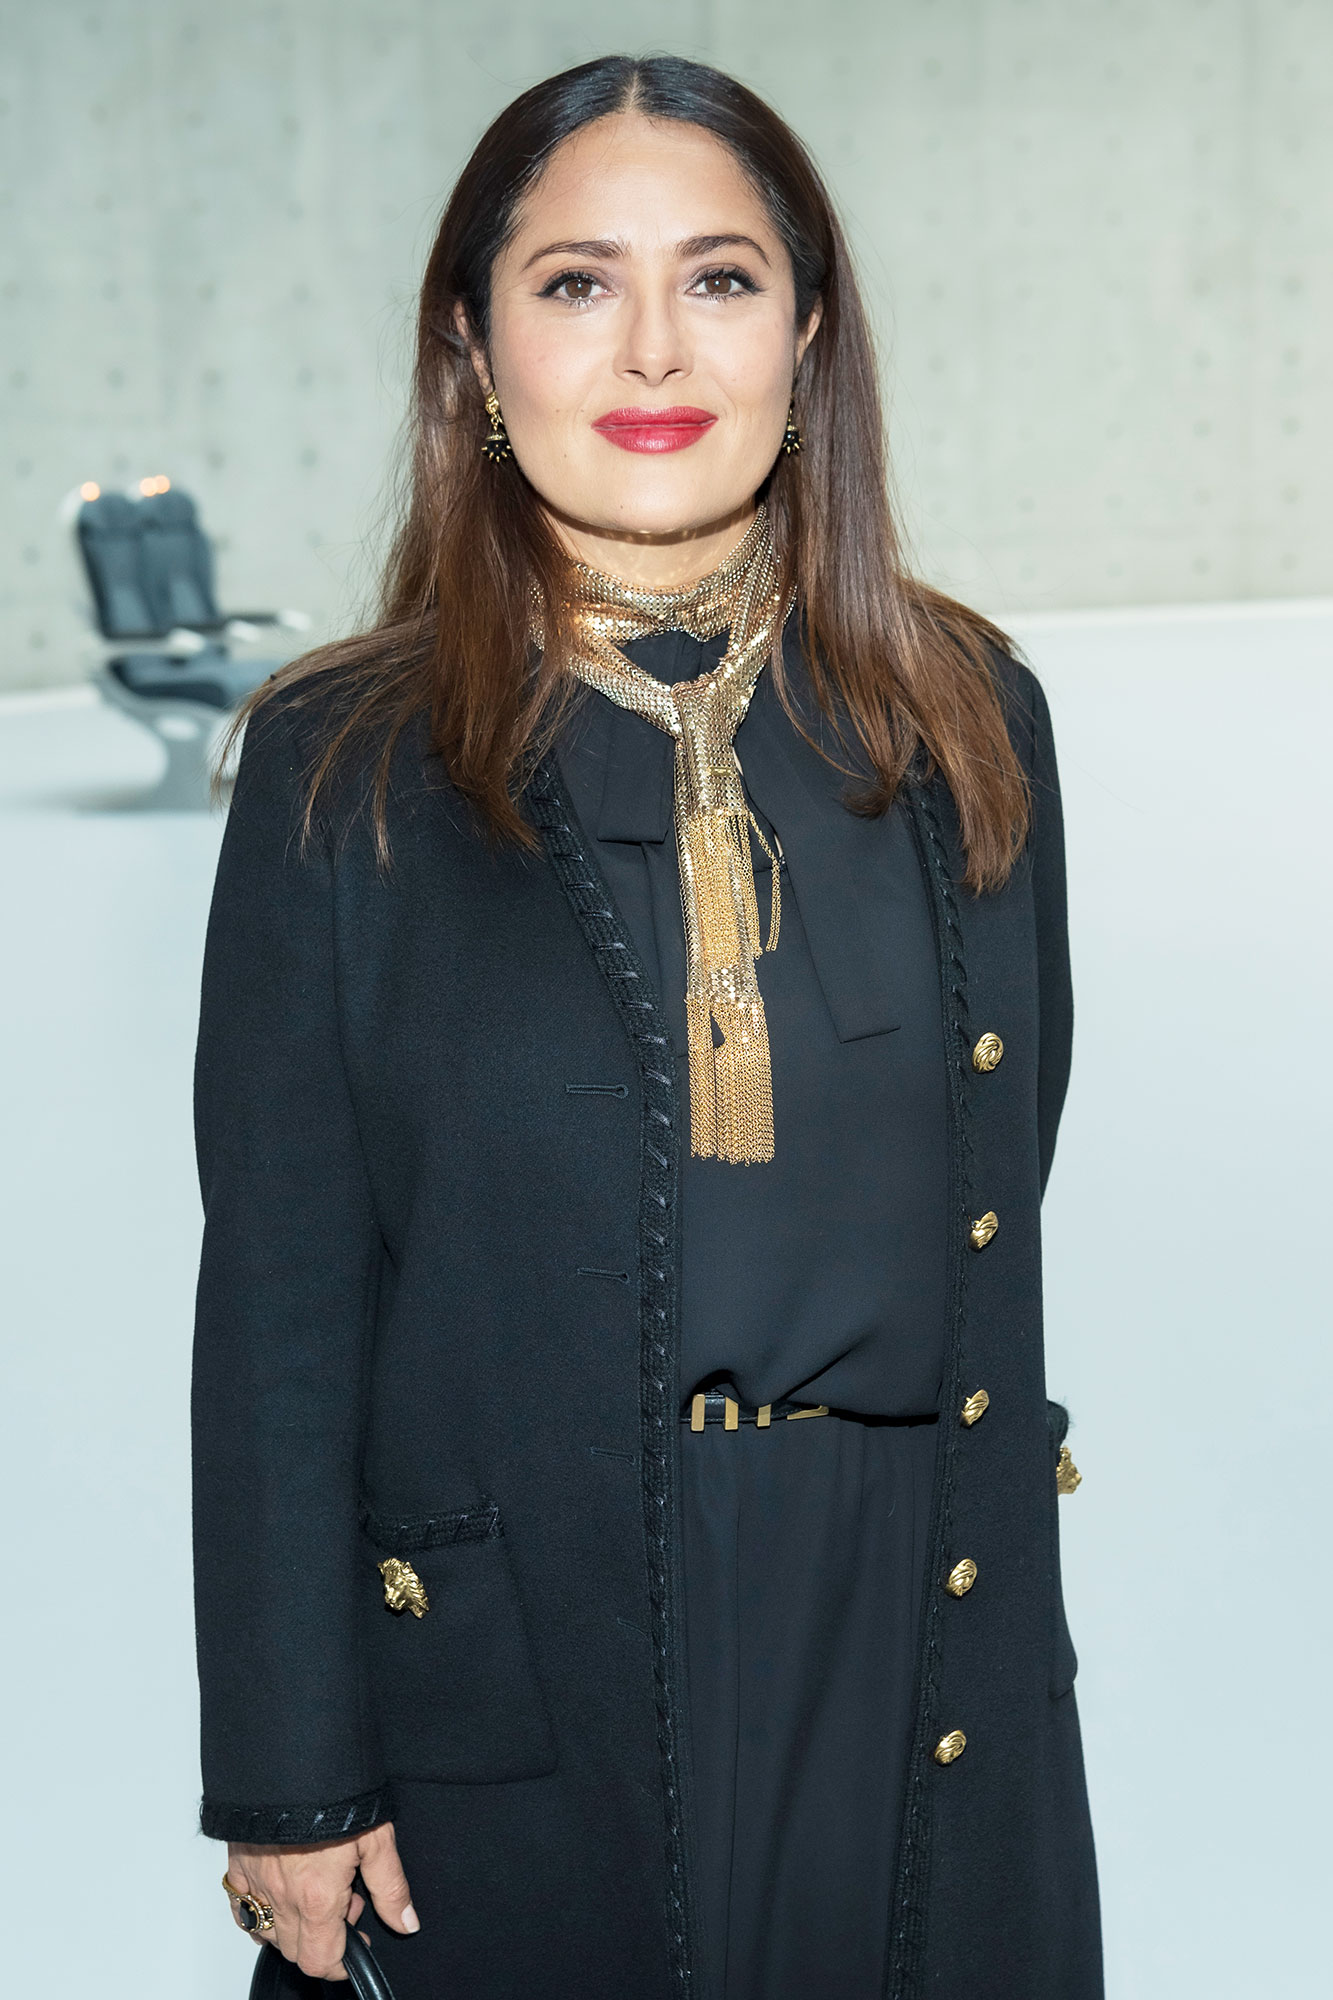 """Salma Hayek attends the """" Bourse de Commerce - Pinault Collection, Modern Art Foundation """" Opening Night on May 19, 2021 in Paris, France."""